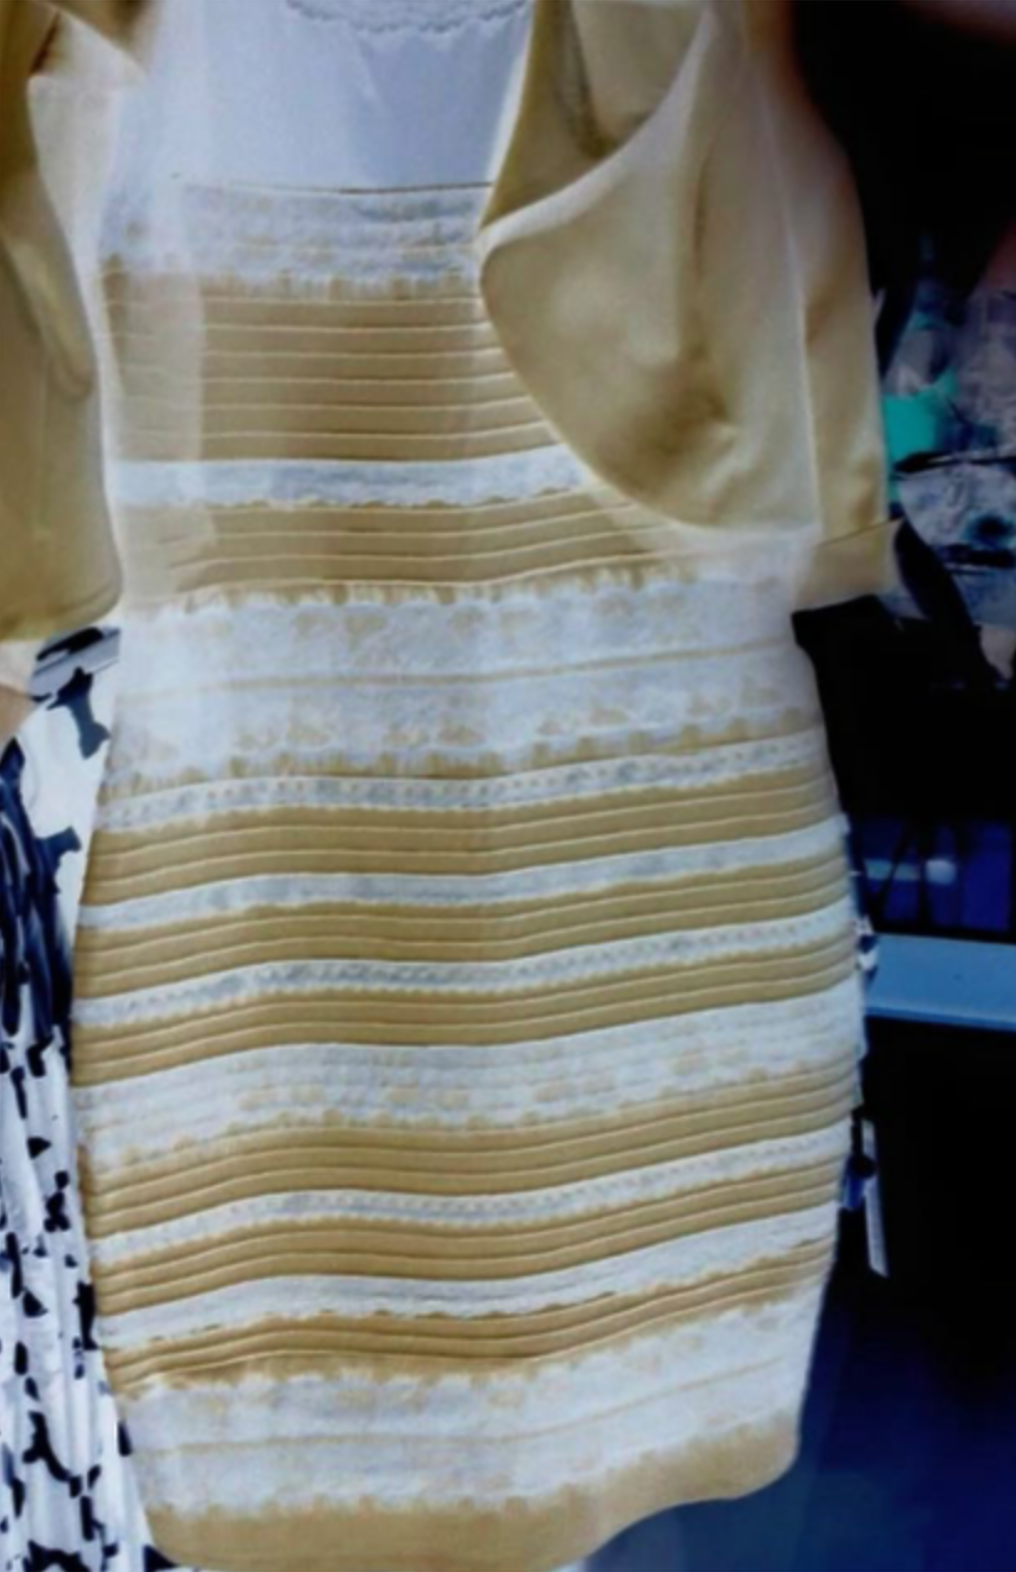 The dress explained - The Black And Blue White And Gold Dress Finally Explained